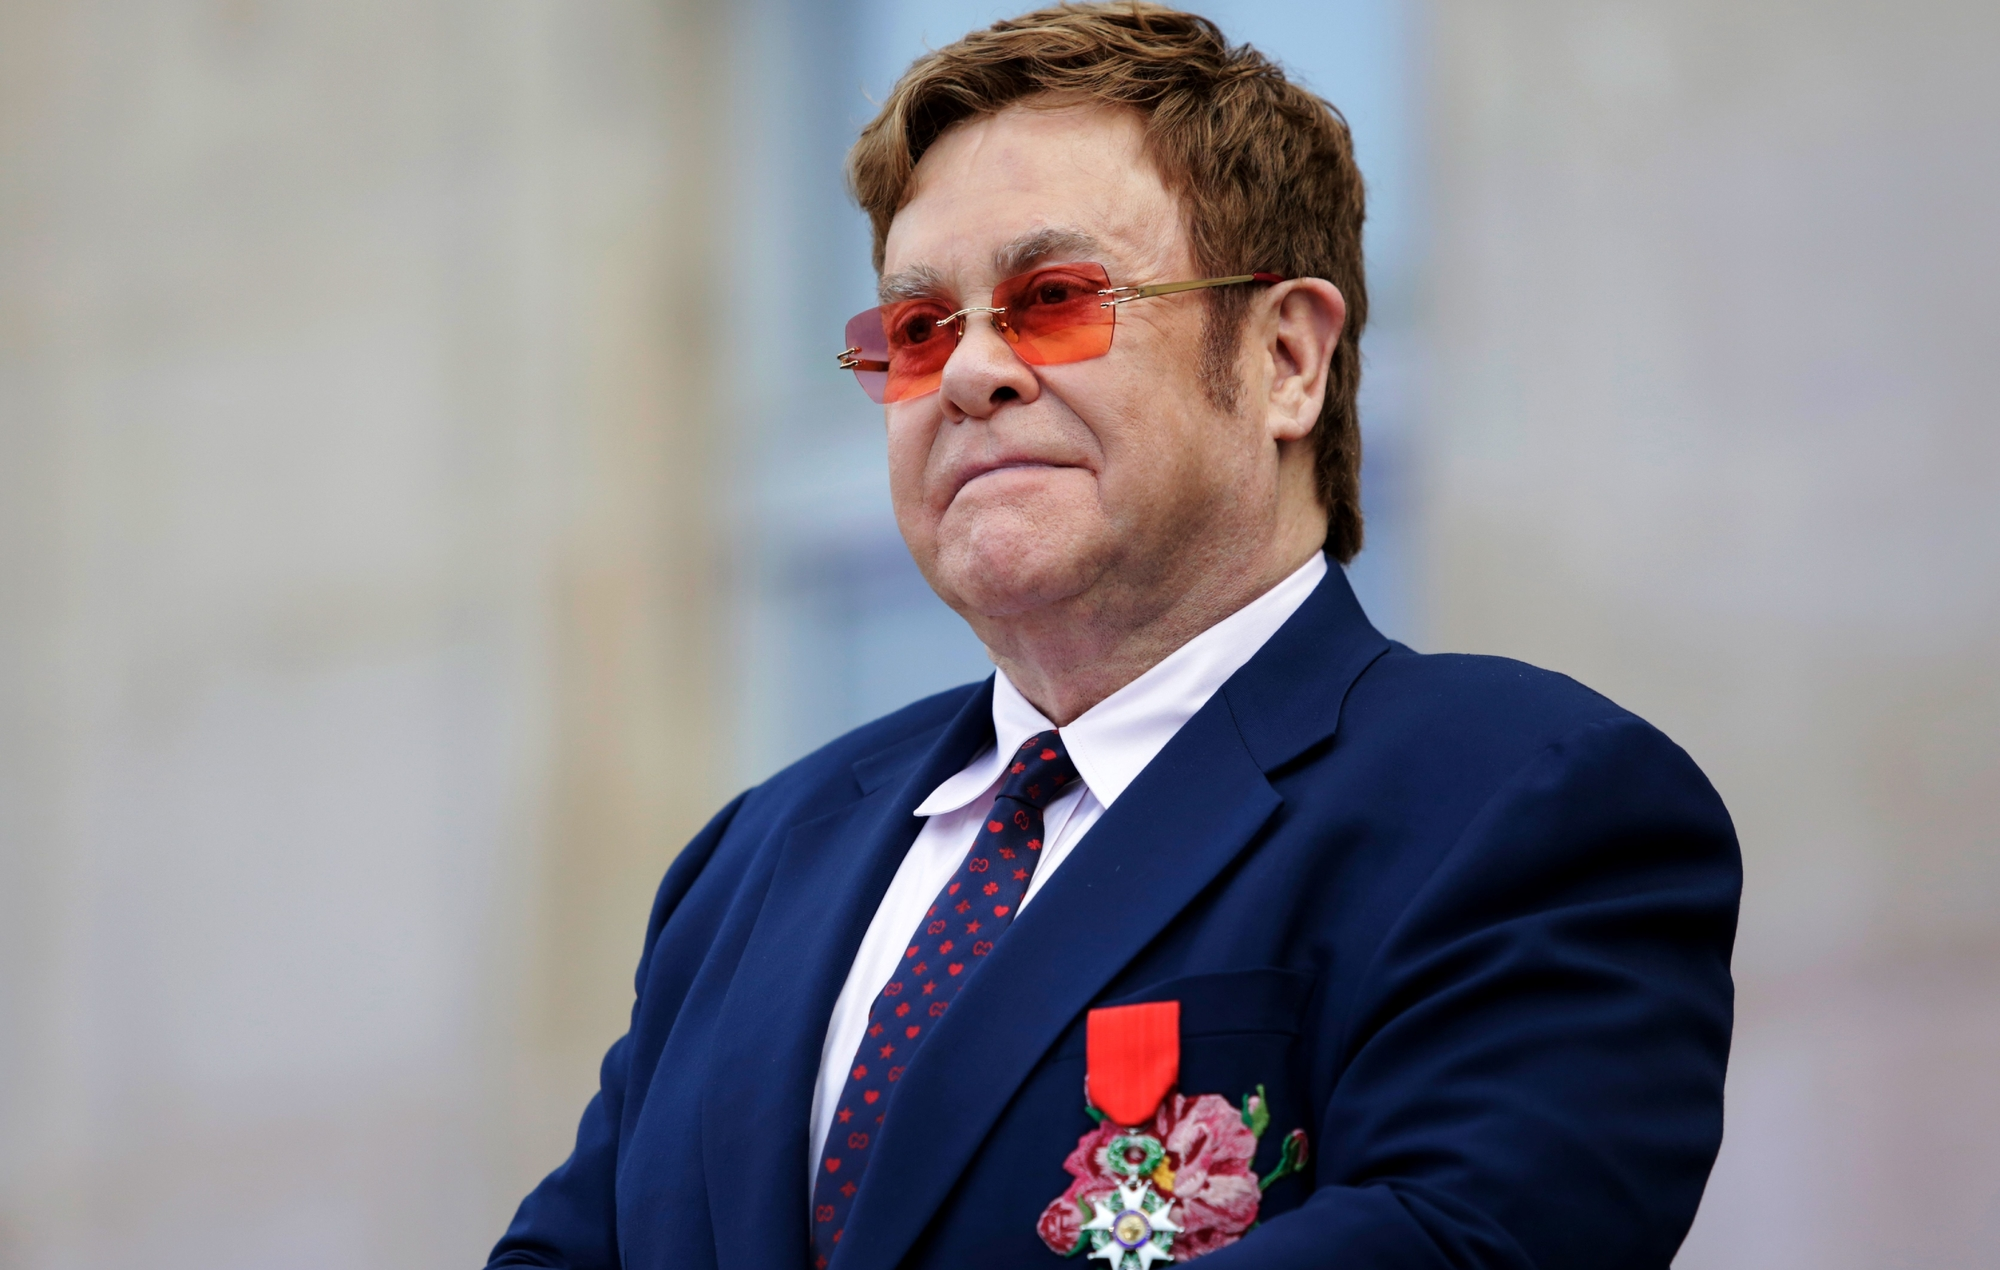 The Decorated Sir Elton John